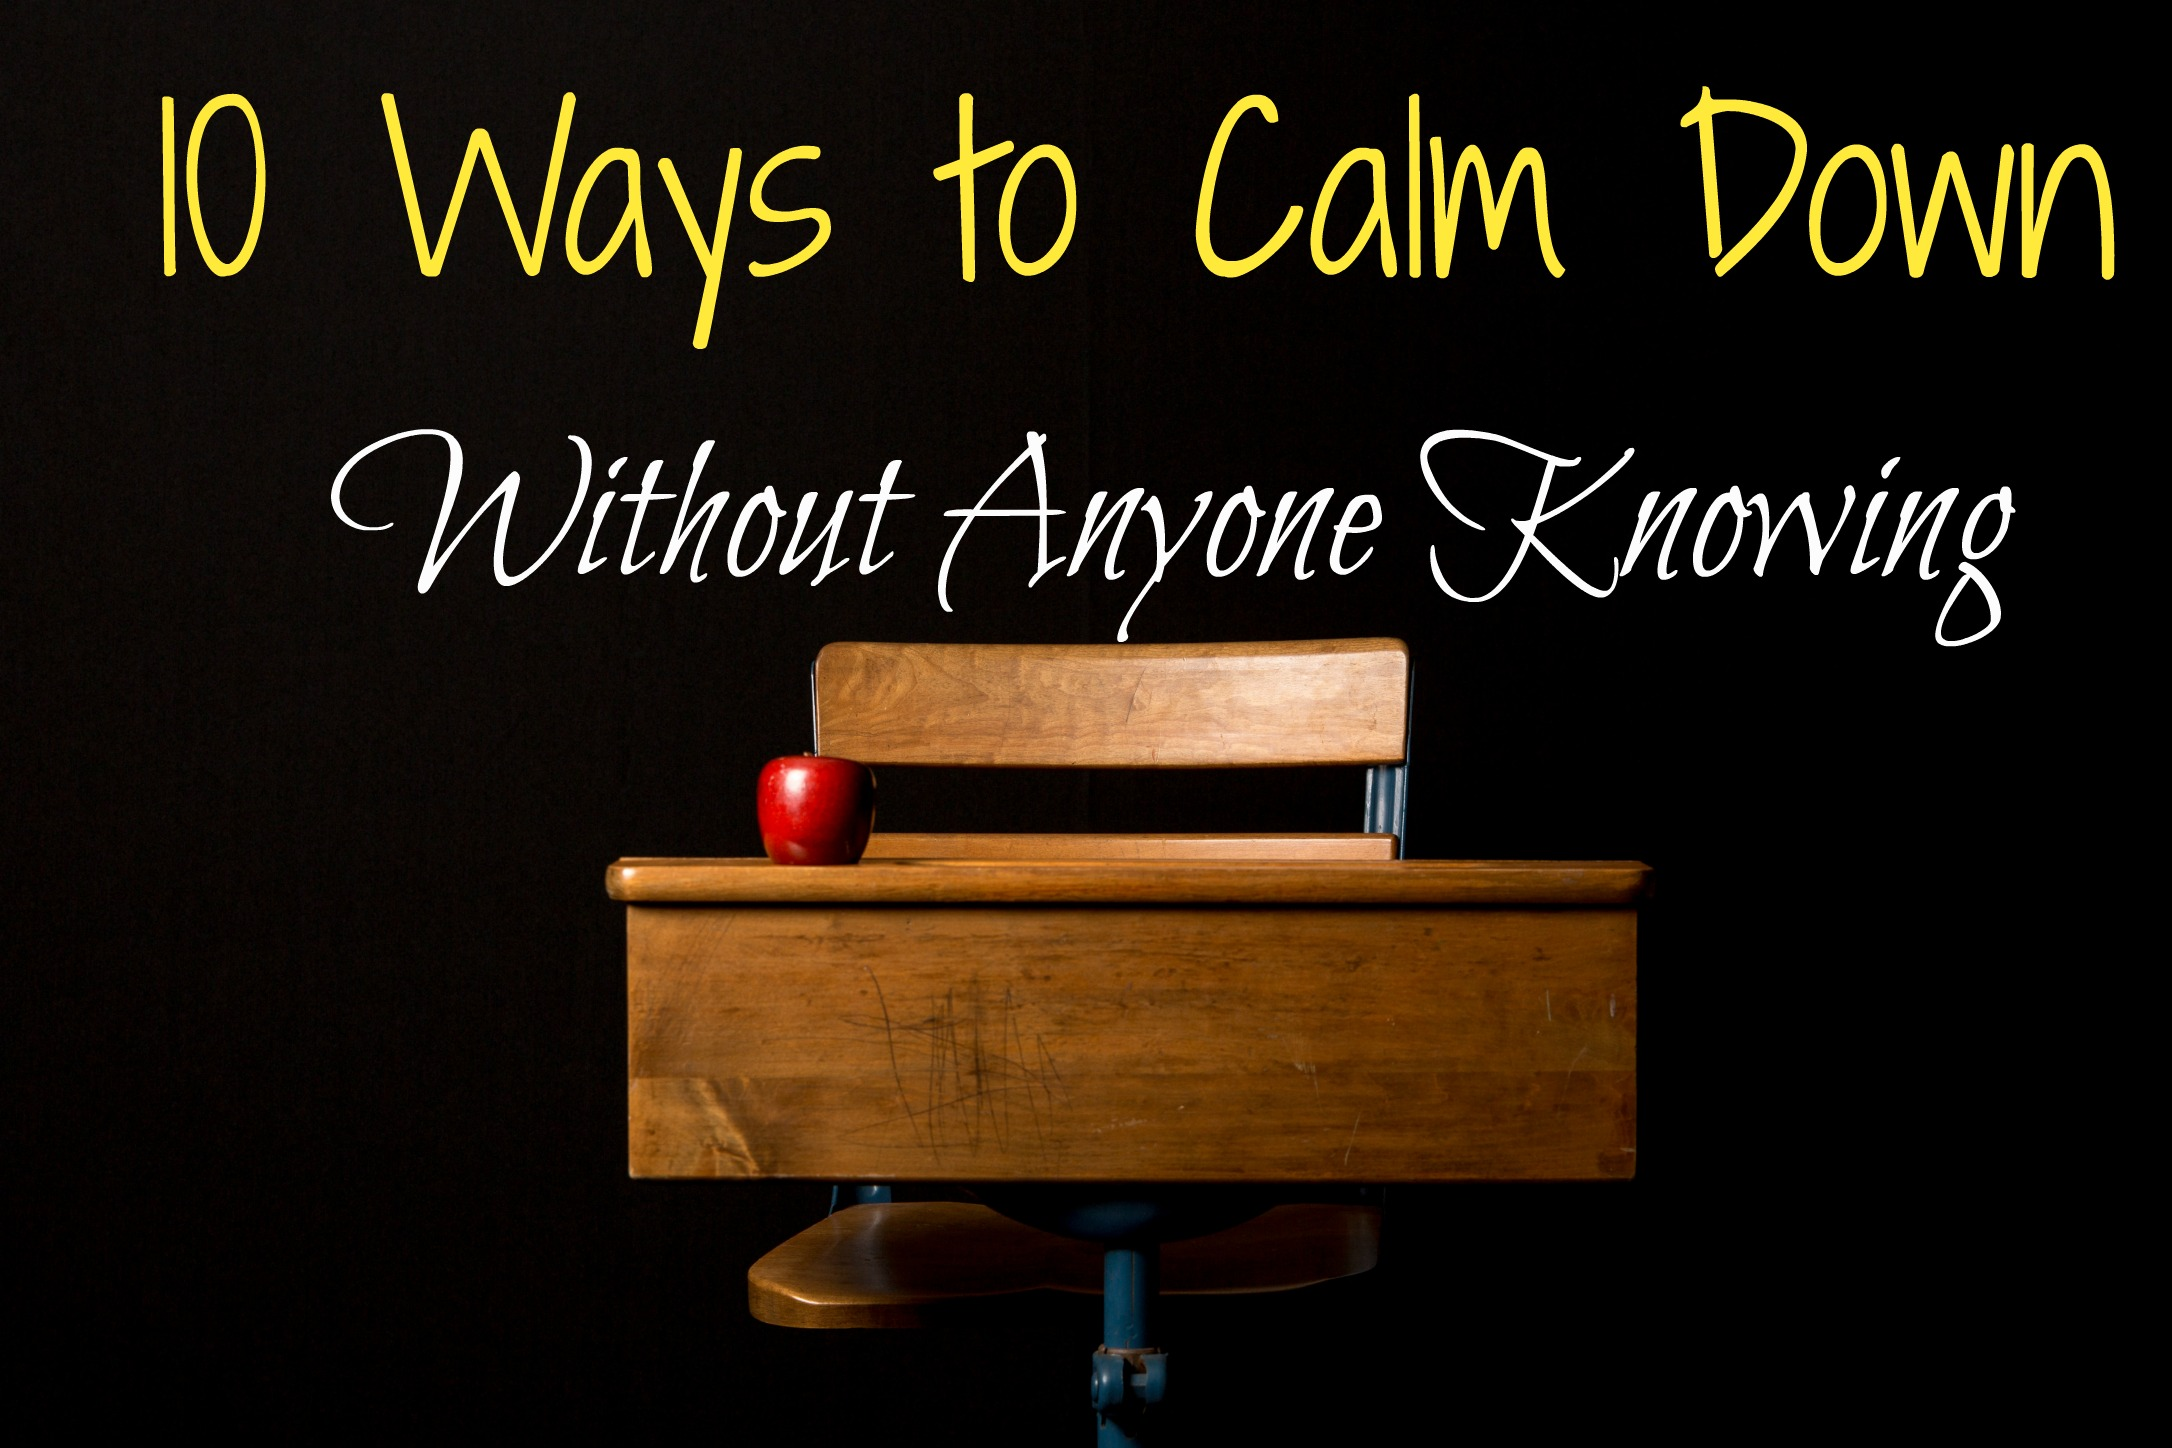 how to calm down when work is stressful